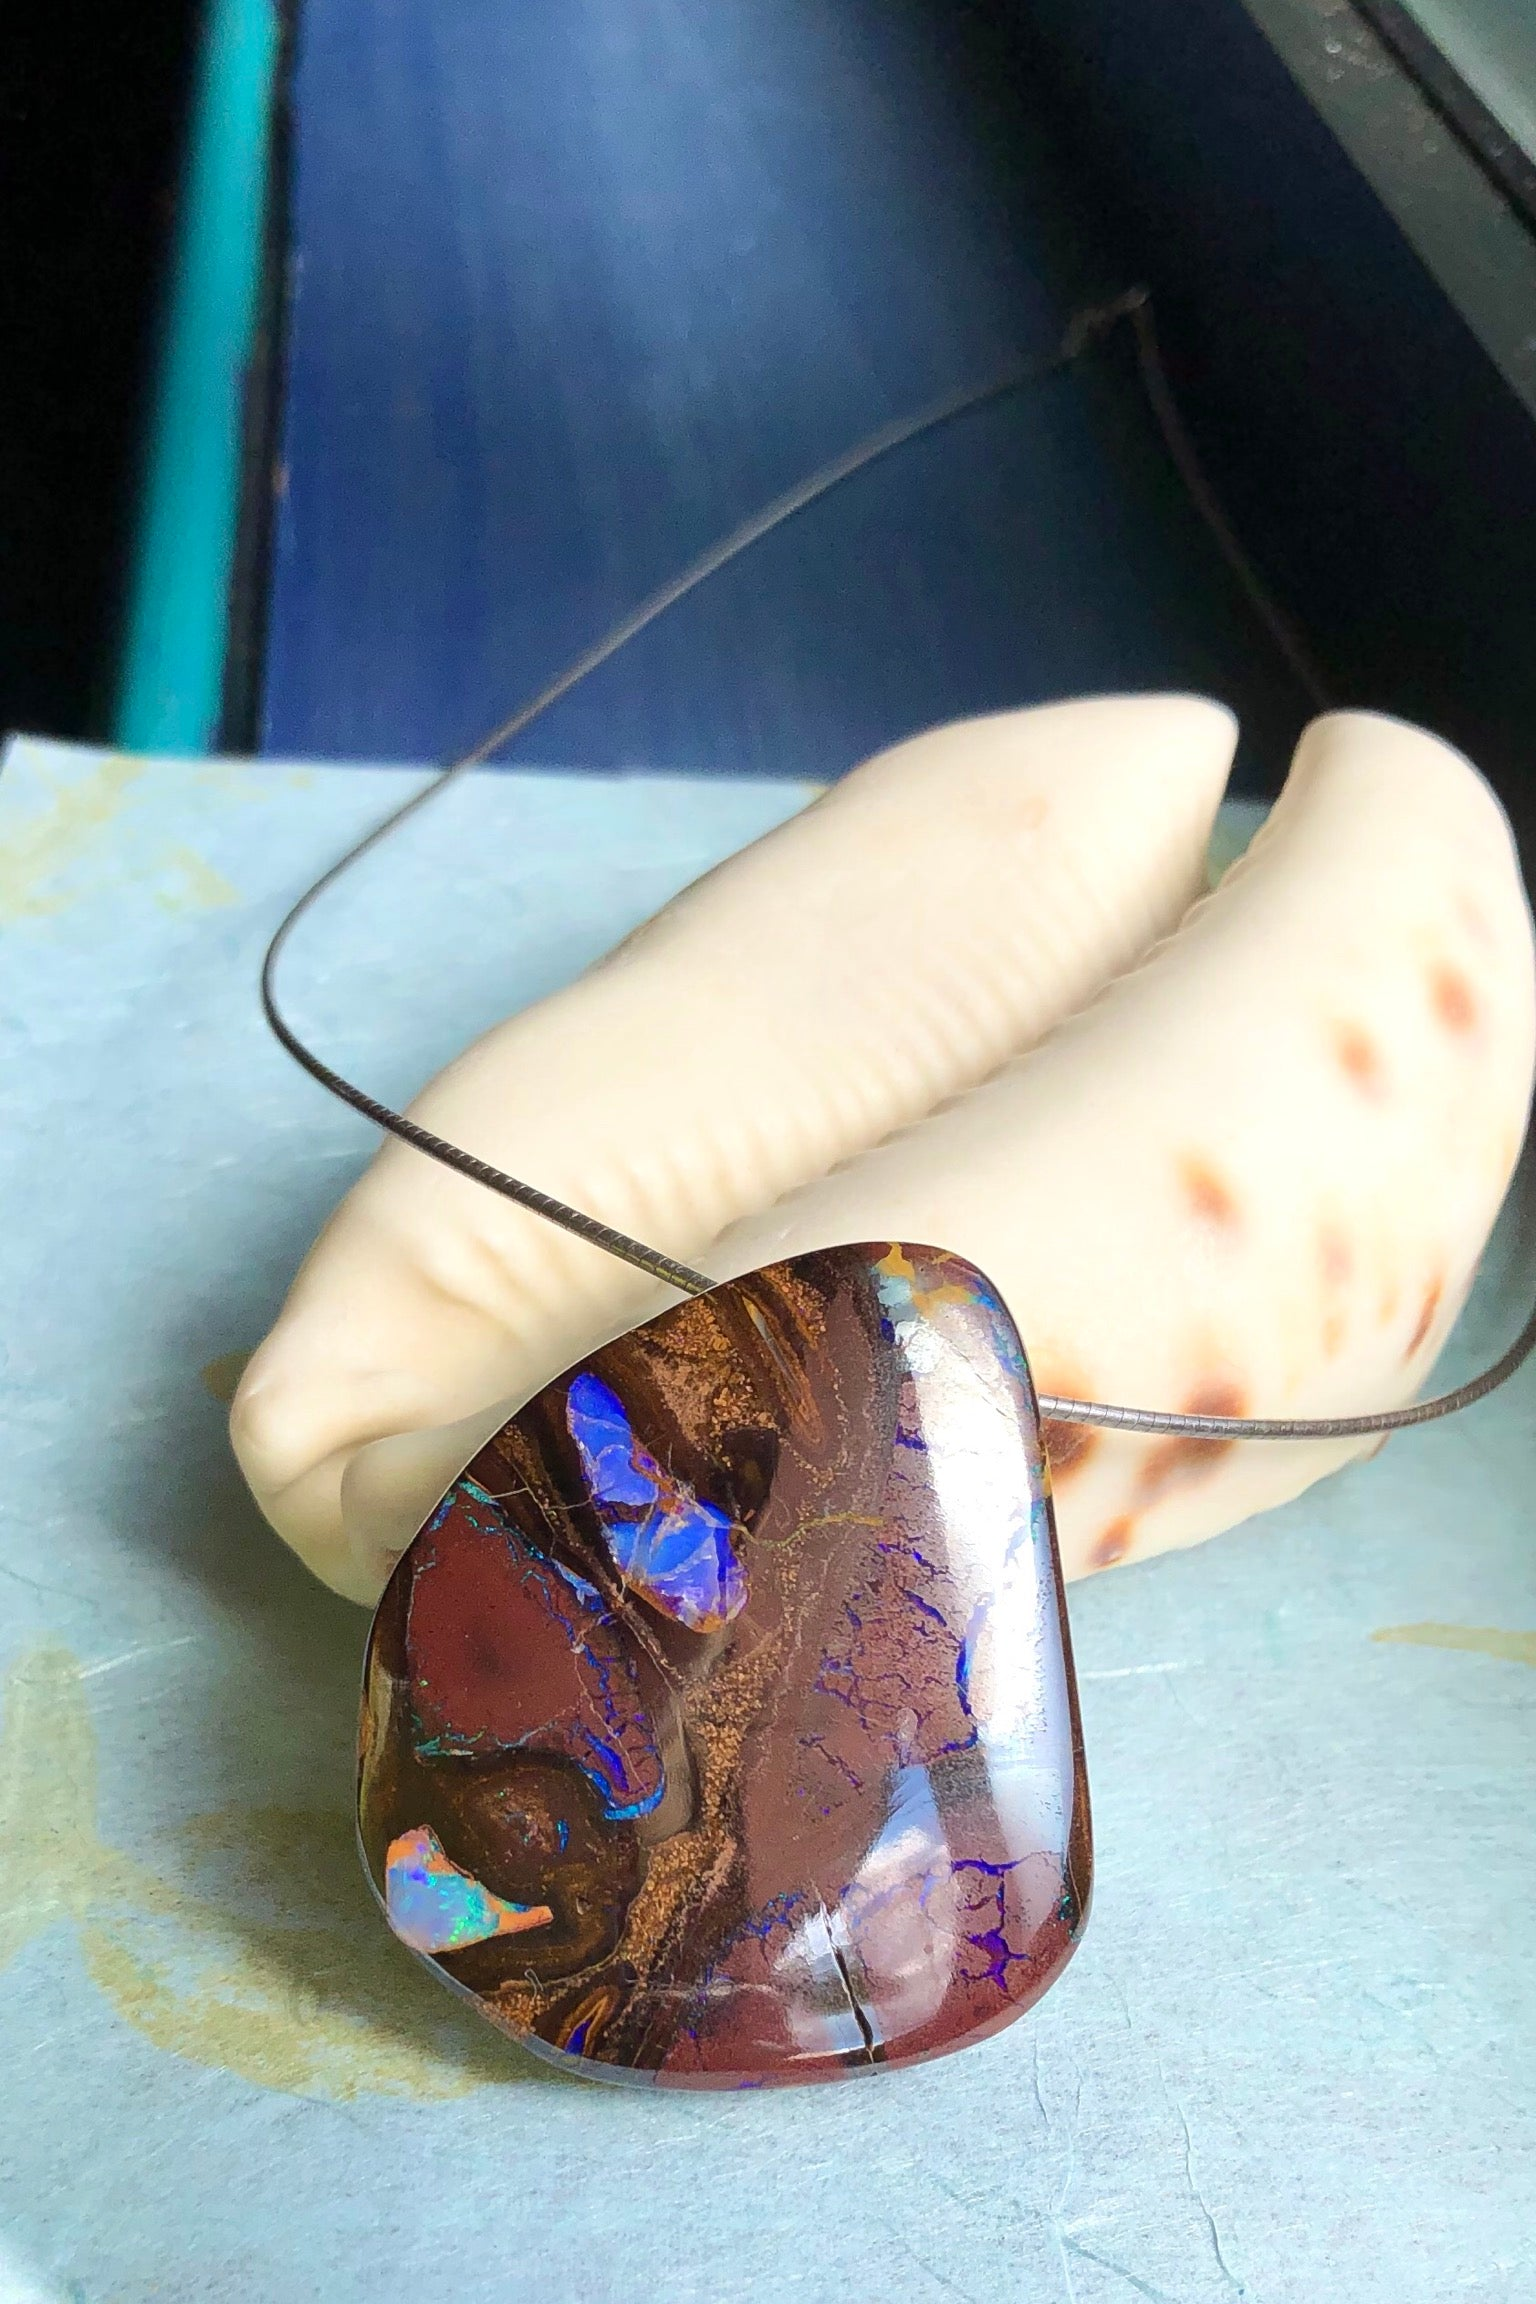 this intriguing piece of Boulder Opal was mined, cut and polished in Queensland. The flashes of colour give one a glimpse into the past.